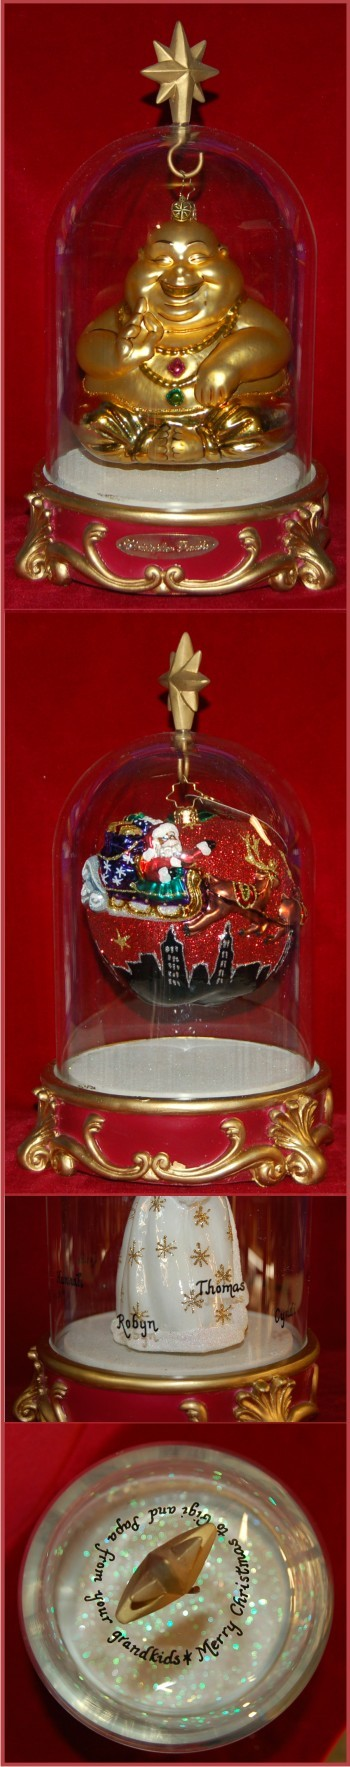 Medium Ornament Keepsake Dome -  Up to 18 People Christmas Ornament Personalized by Russell Rhodes